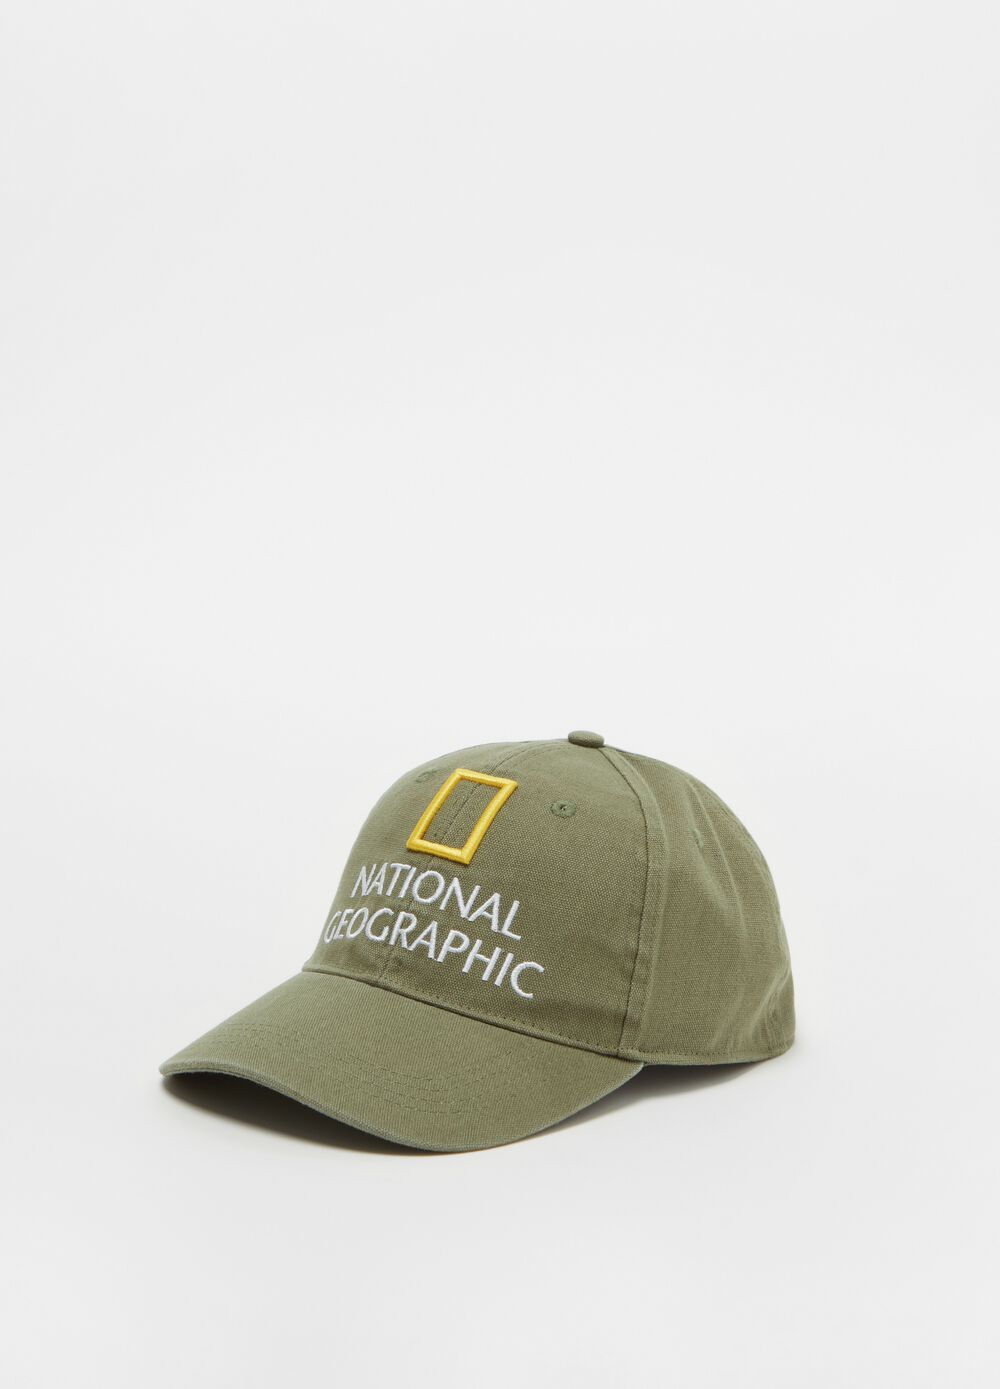 National Geographic baseball cap